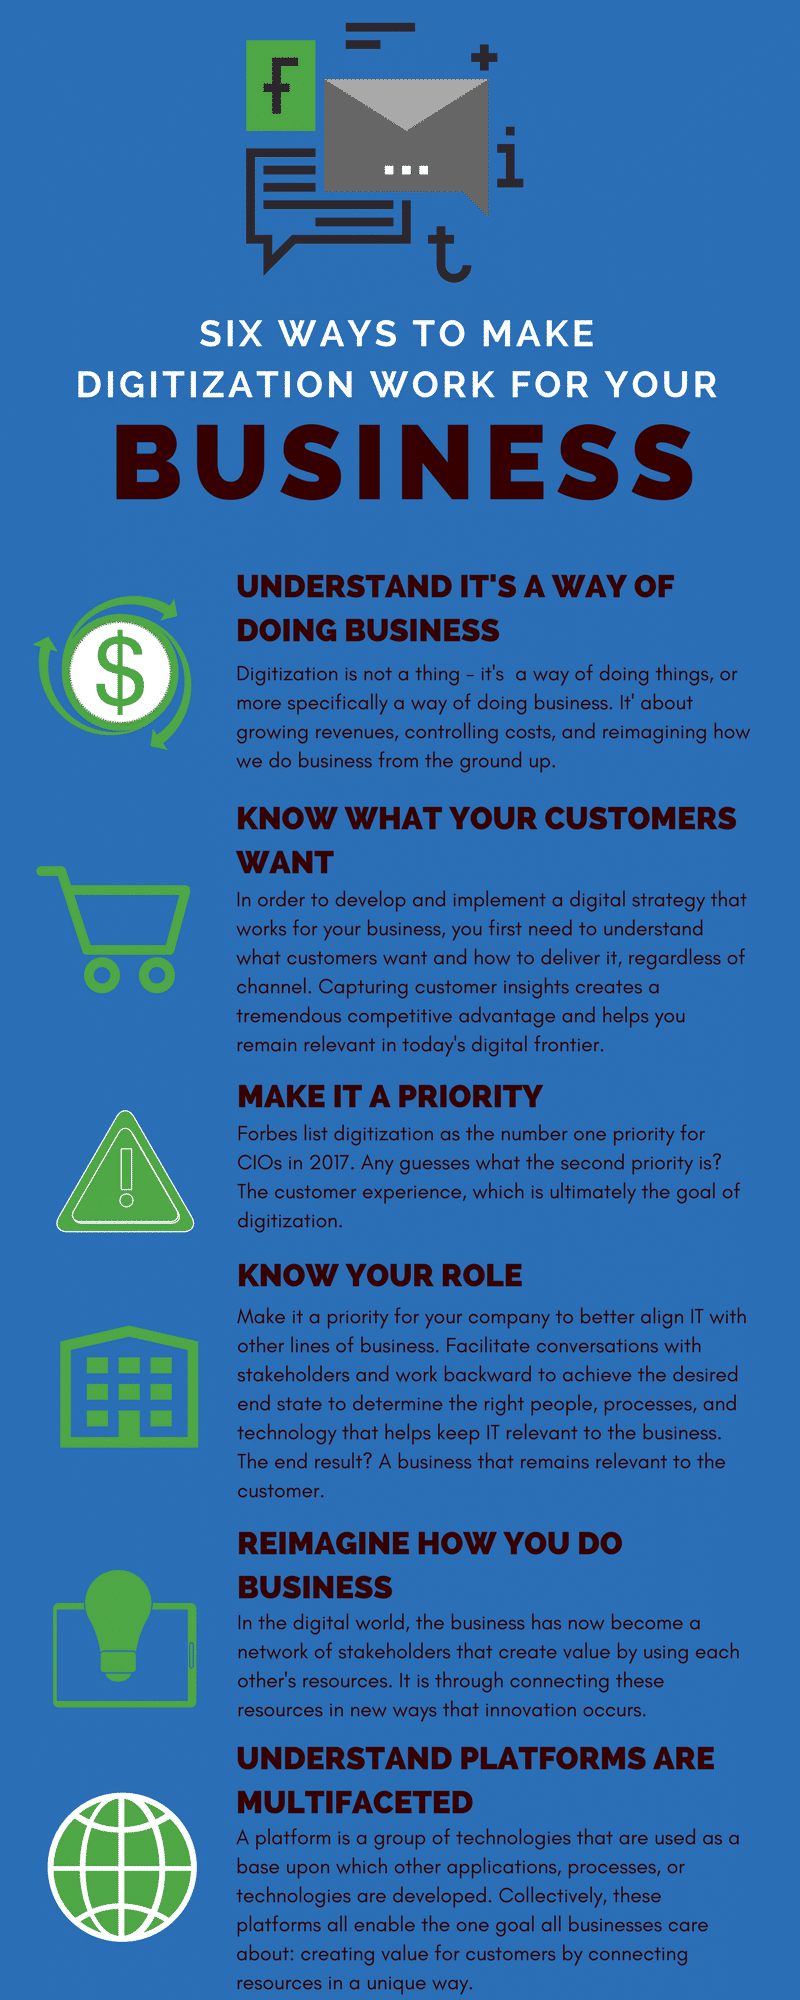 six ways to make digitization work for your business (2)-1.png